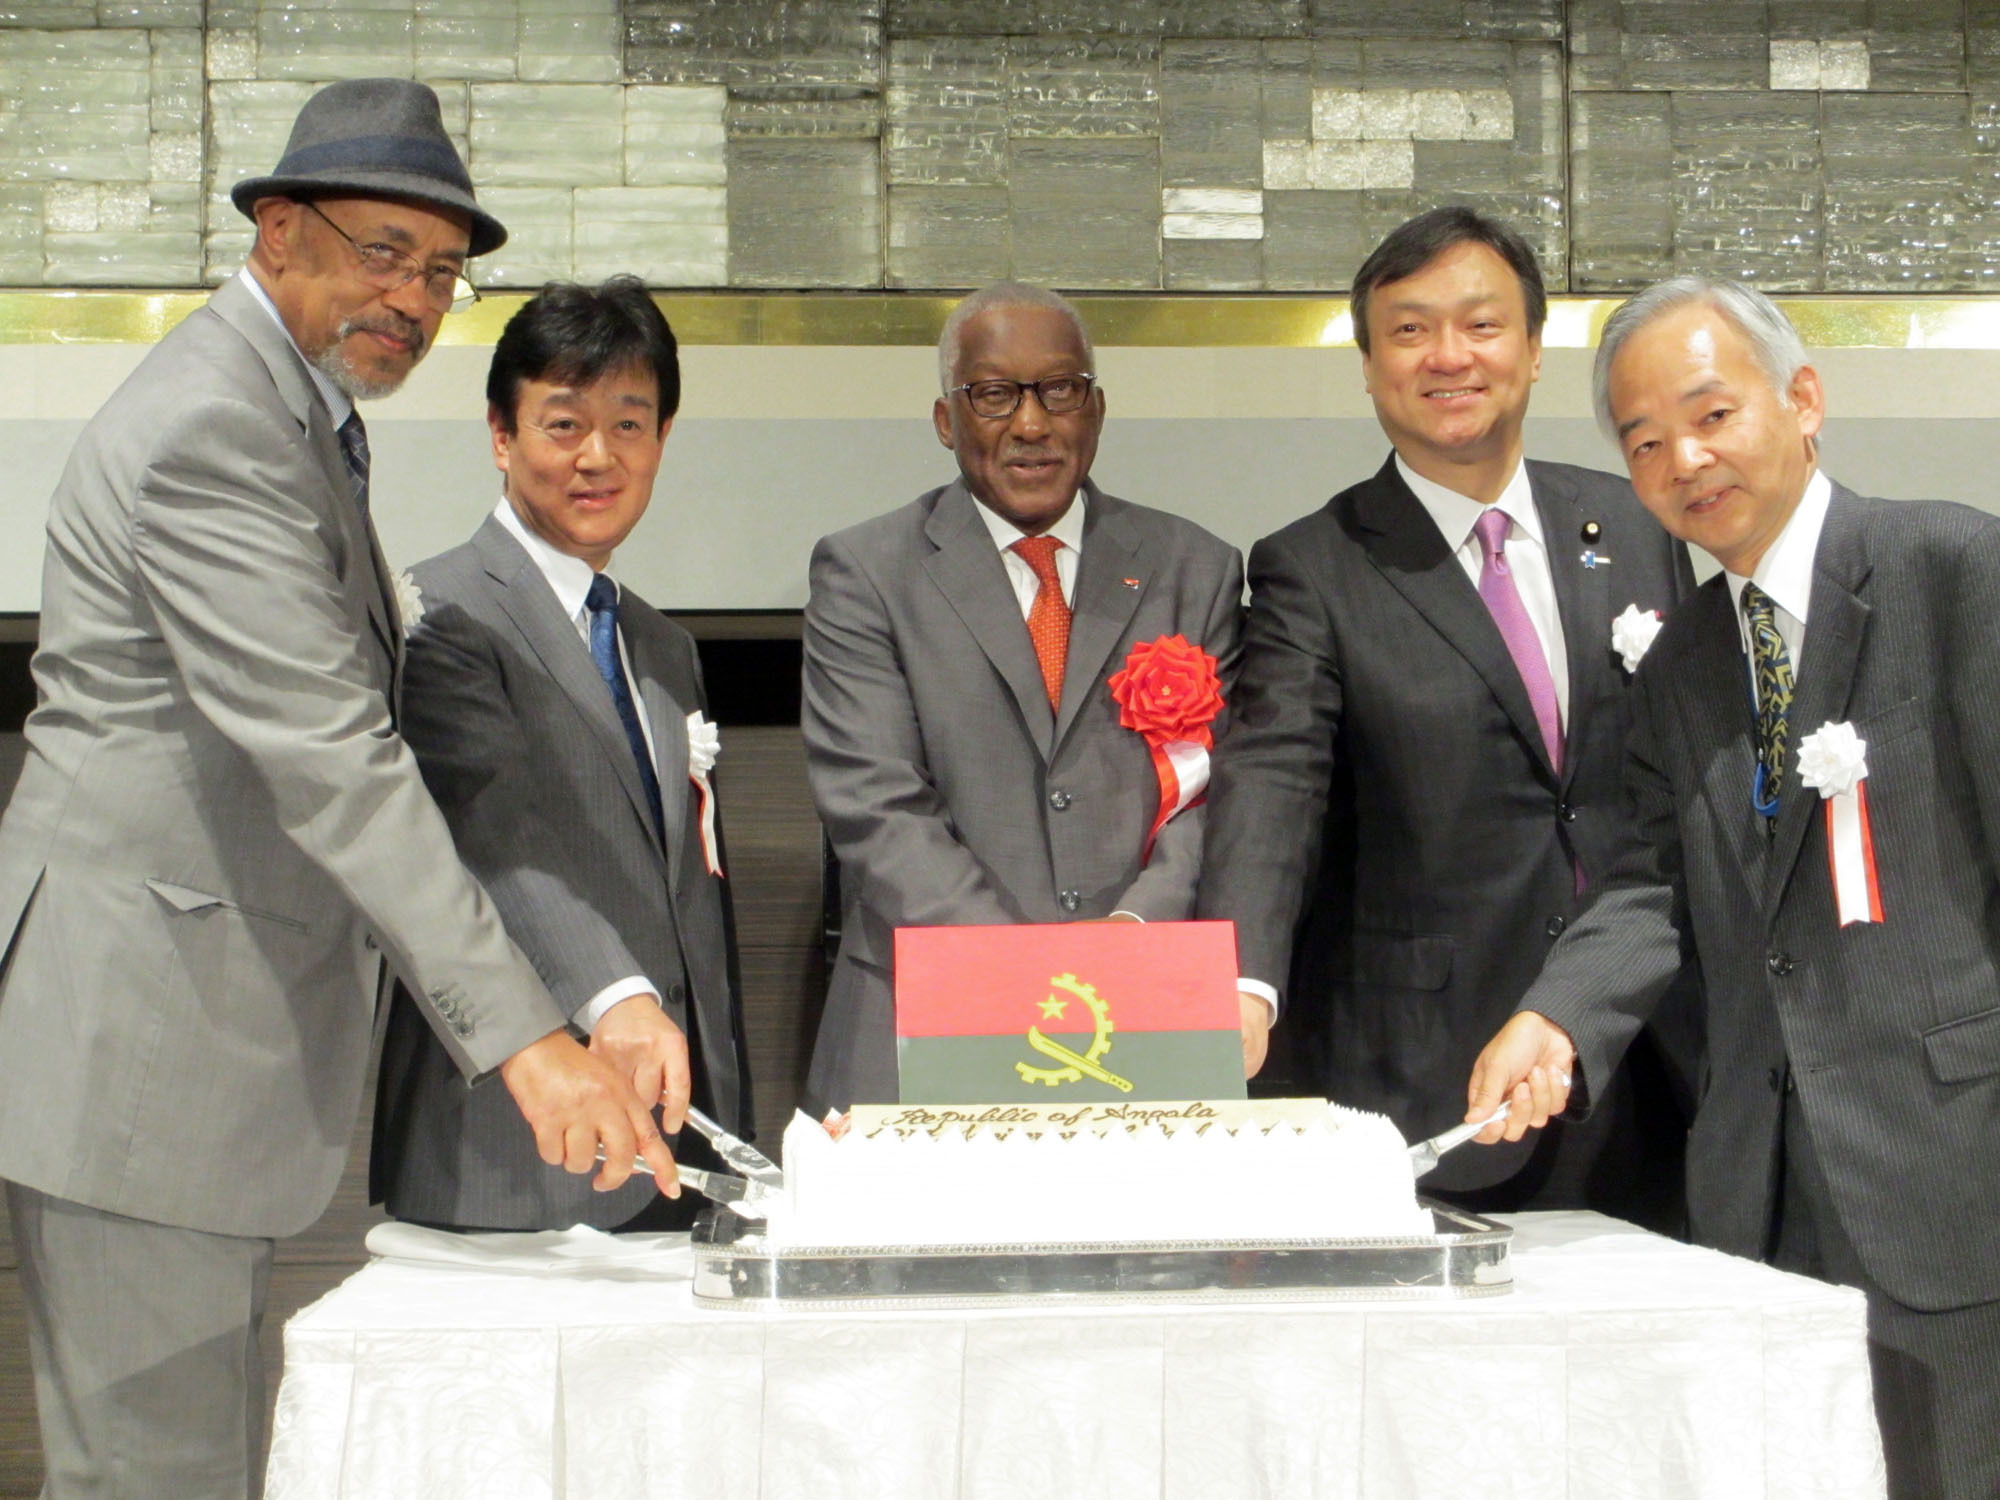 Angolan Ambassador Joao Miguel Vahekeni (center) cuts a cake  with (from left) Eritorian Ambassador Estifanos Afeworki; Takeshi Osuga, director-general of the Foreign Ministry's African Affairs Department; Iwao Horii, parliamentary vice-minister for foreign affairs; and Yoshifumi Okamura, ambassador extraordinary and plenipotentiary at the United Nations, during a reception to celebrate the anniversary of Angola's independence at Hotel New Otani on Nov. 10. |   HIROKO INOUE